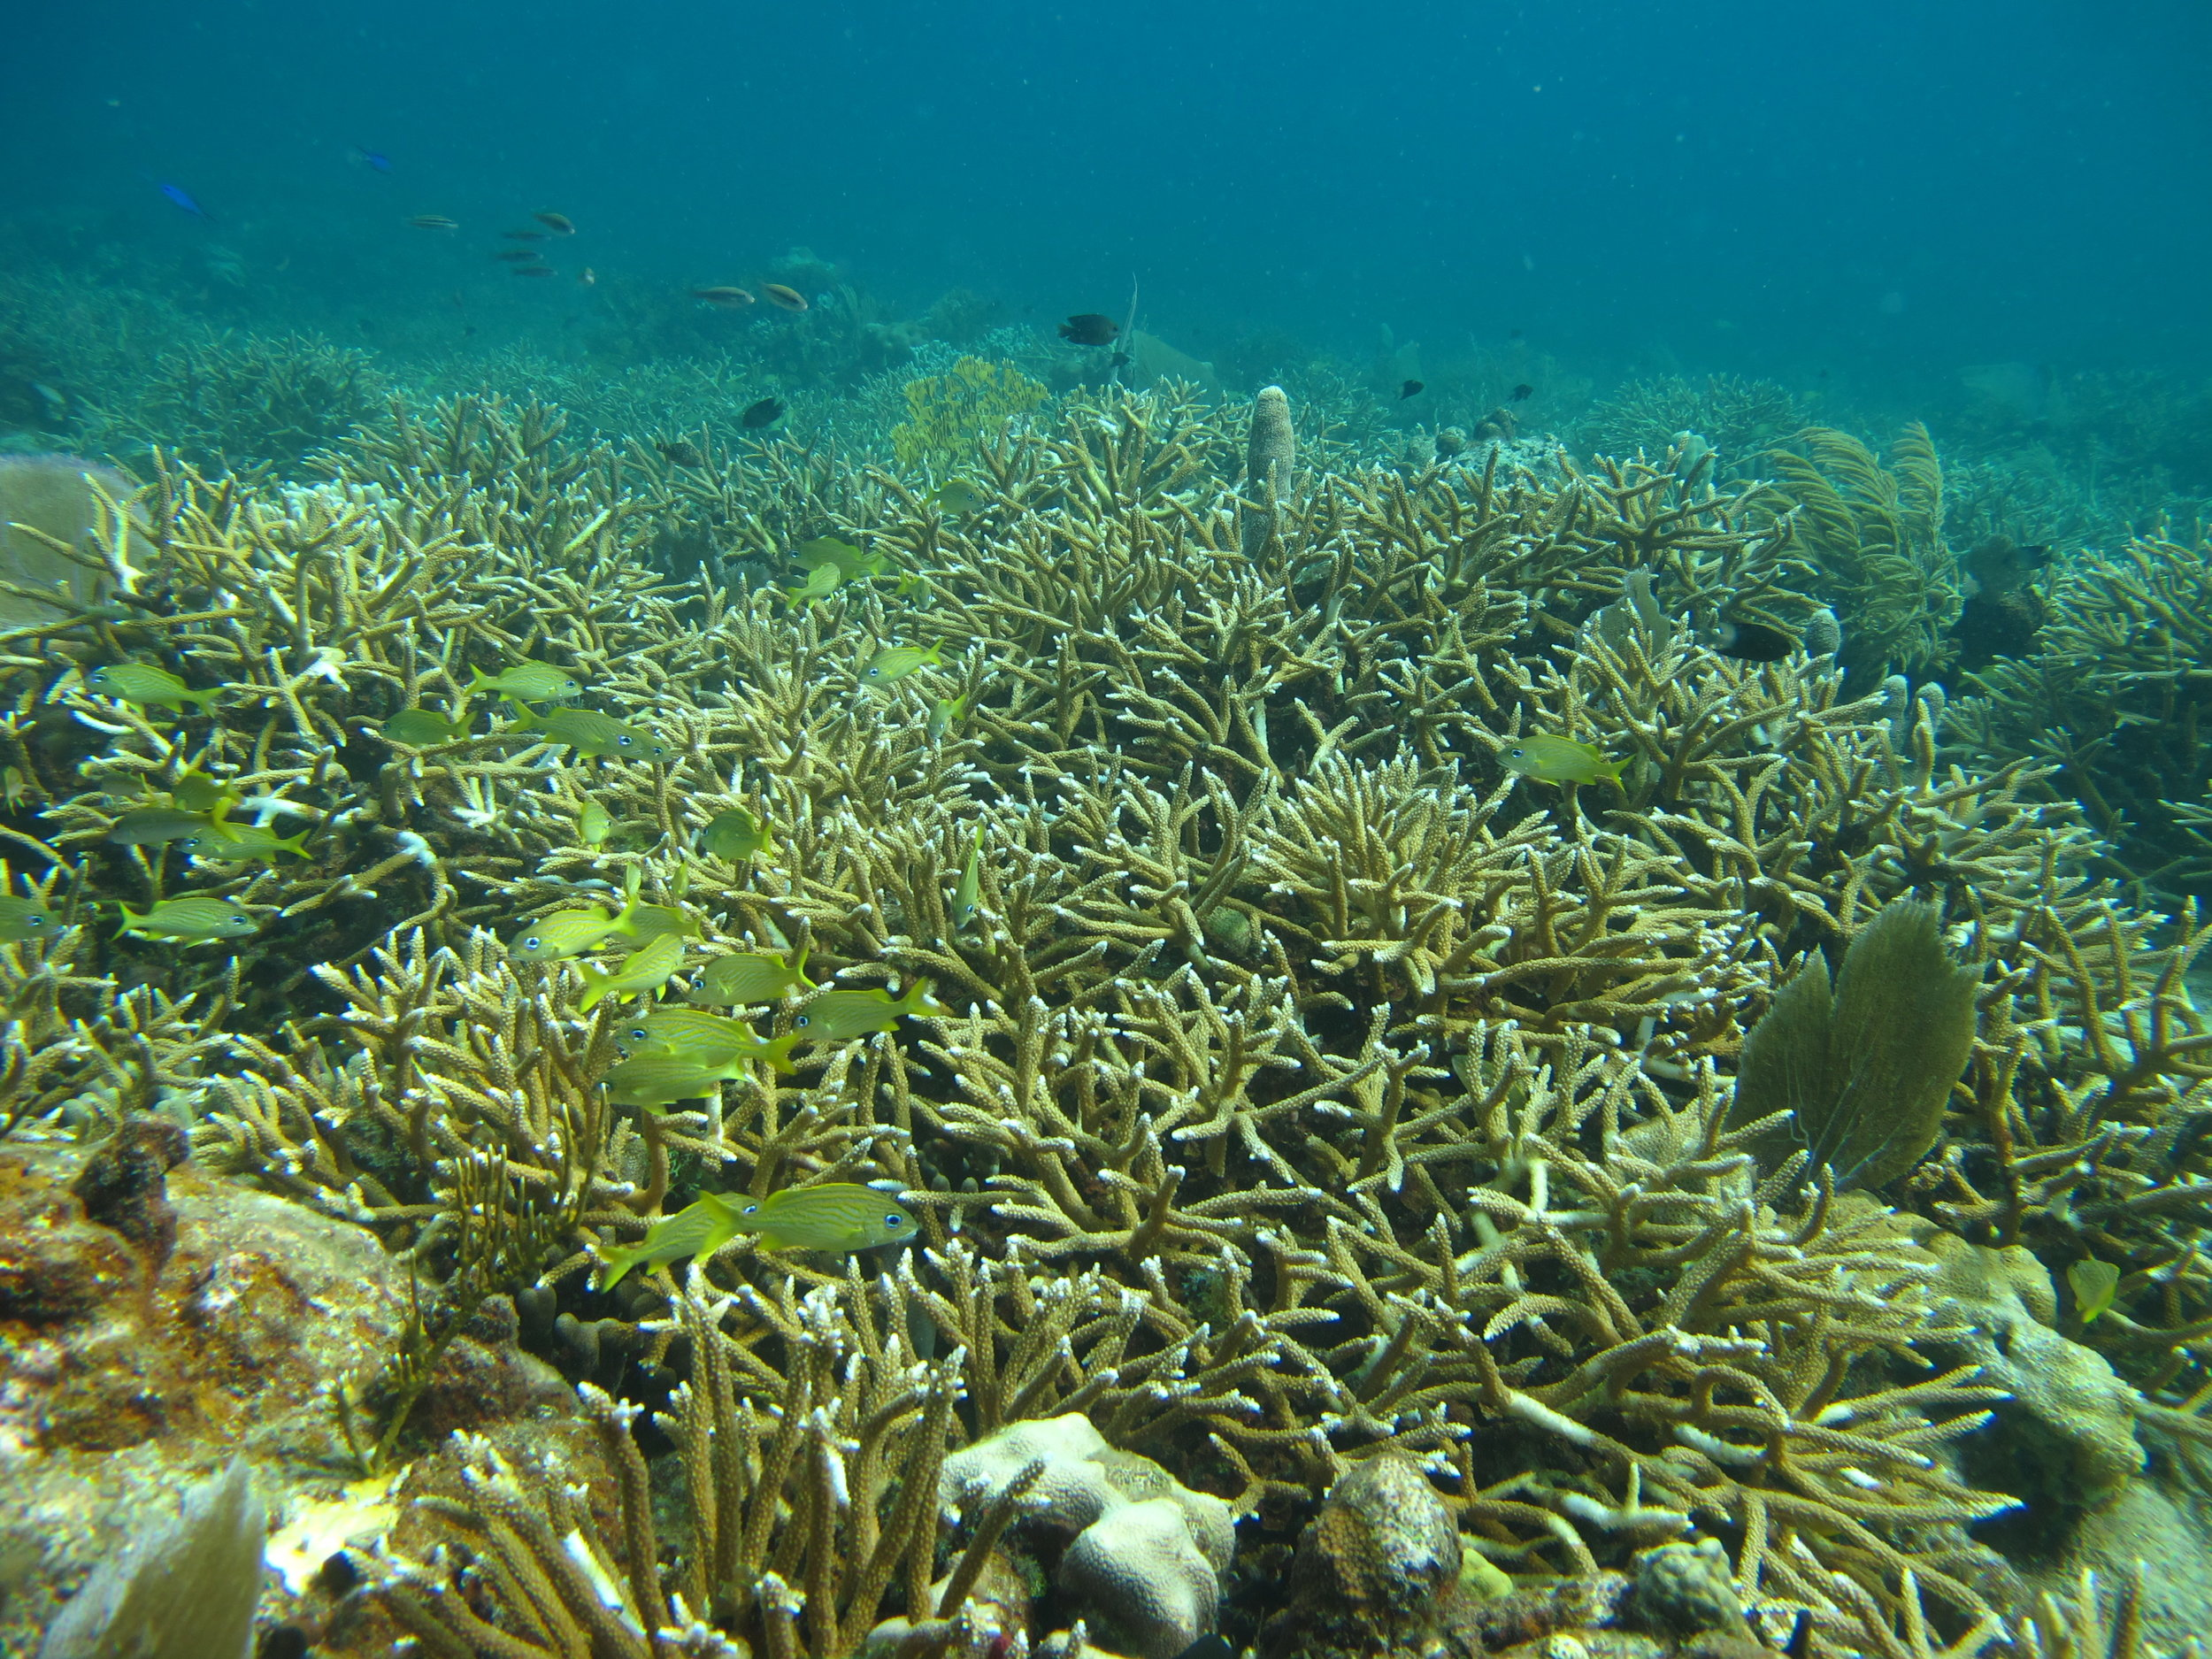 This healthy coral garden thrives at Flat Cay on the south side of St. Thomas.